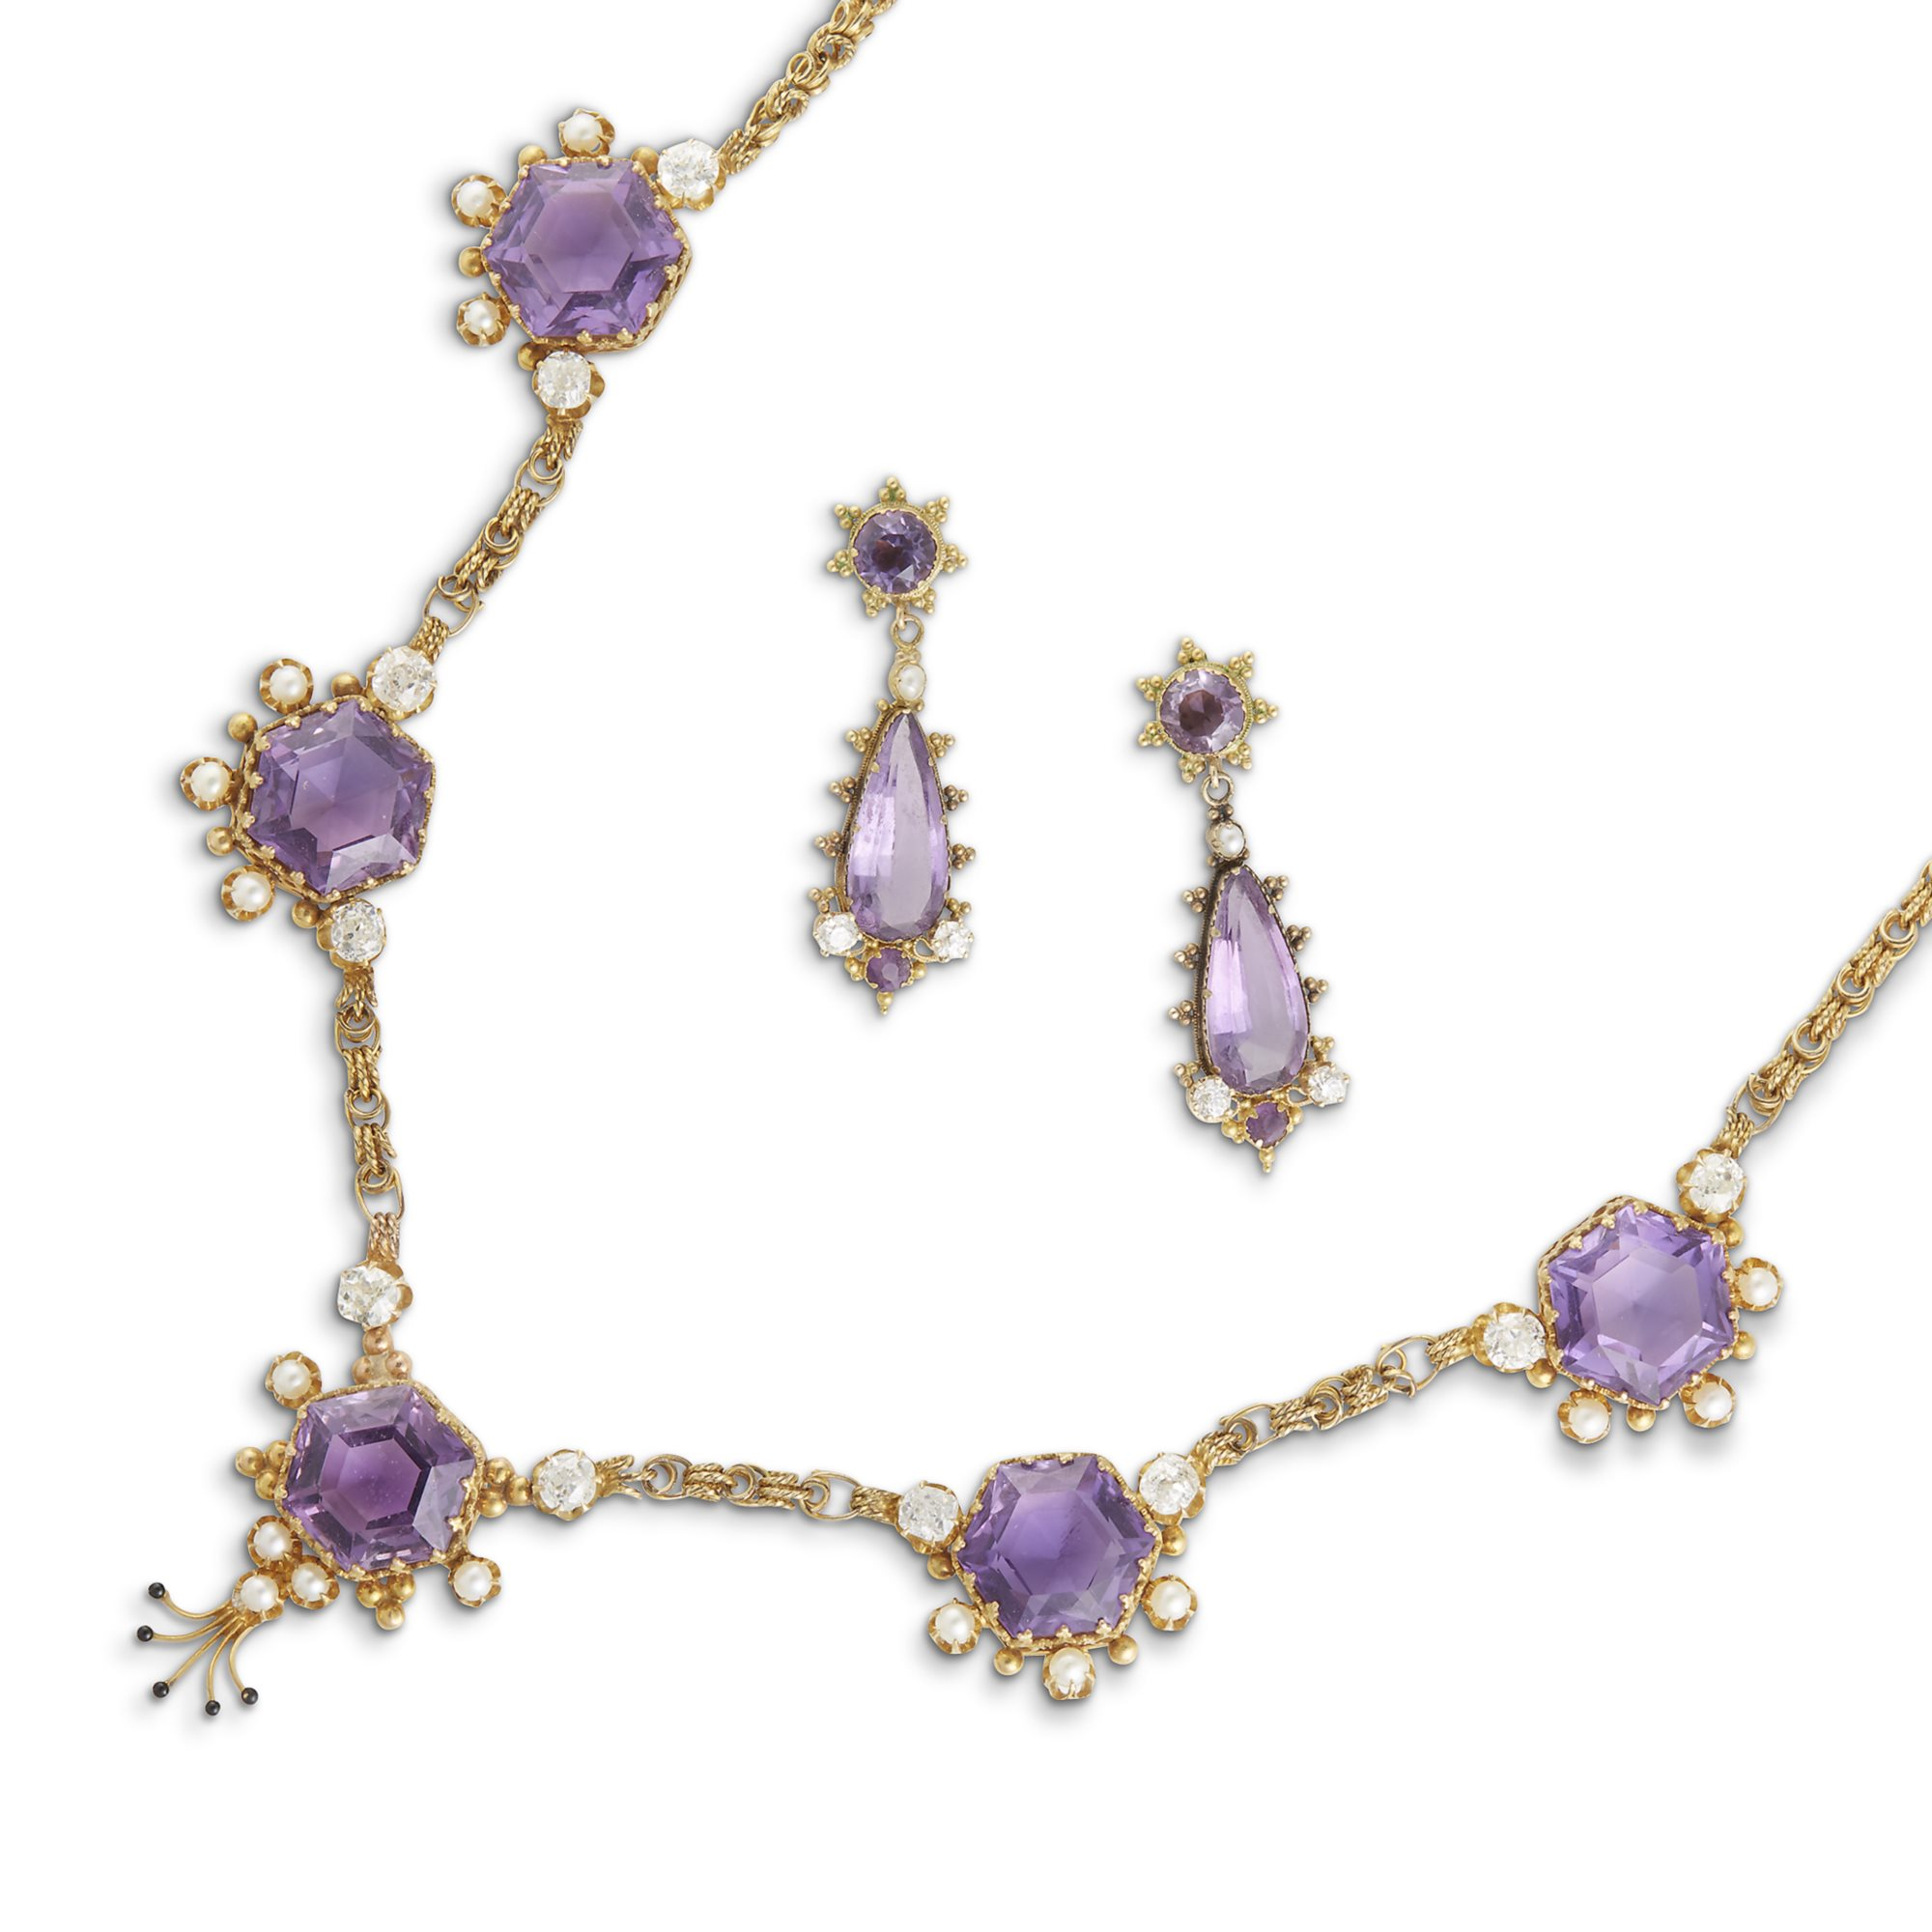 An amethyst, diamond, cultured pearl and fourteen karat gold necklace, earrings and ring. Sold at Freeman's for $3,000